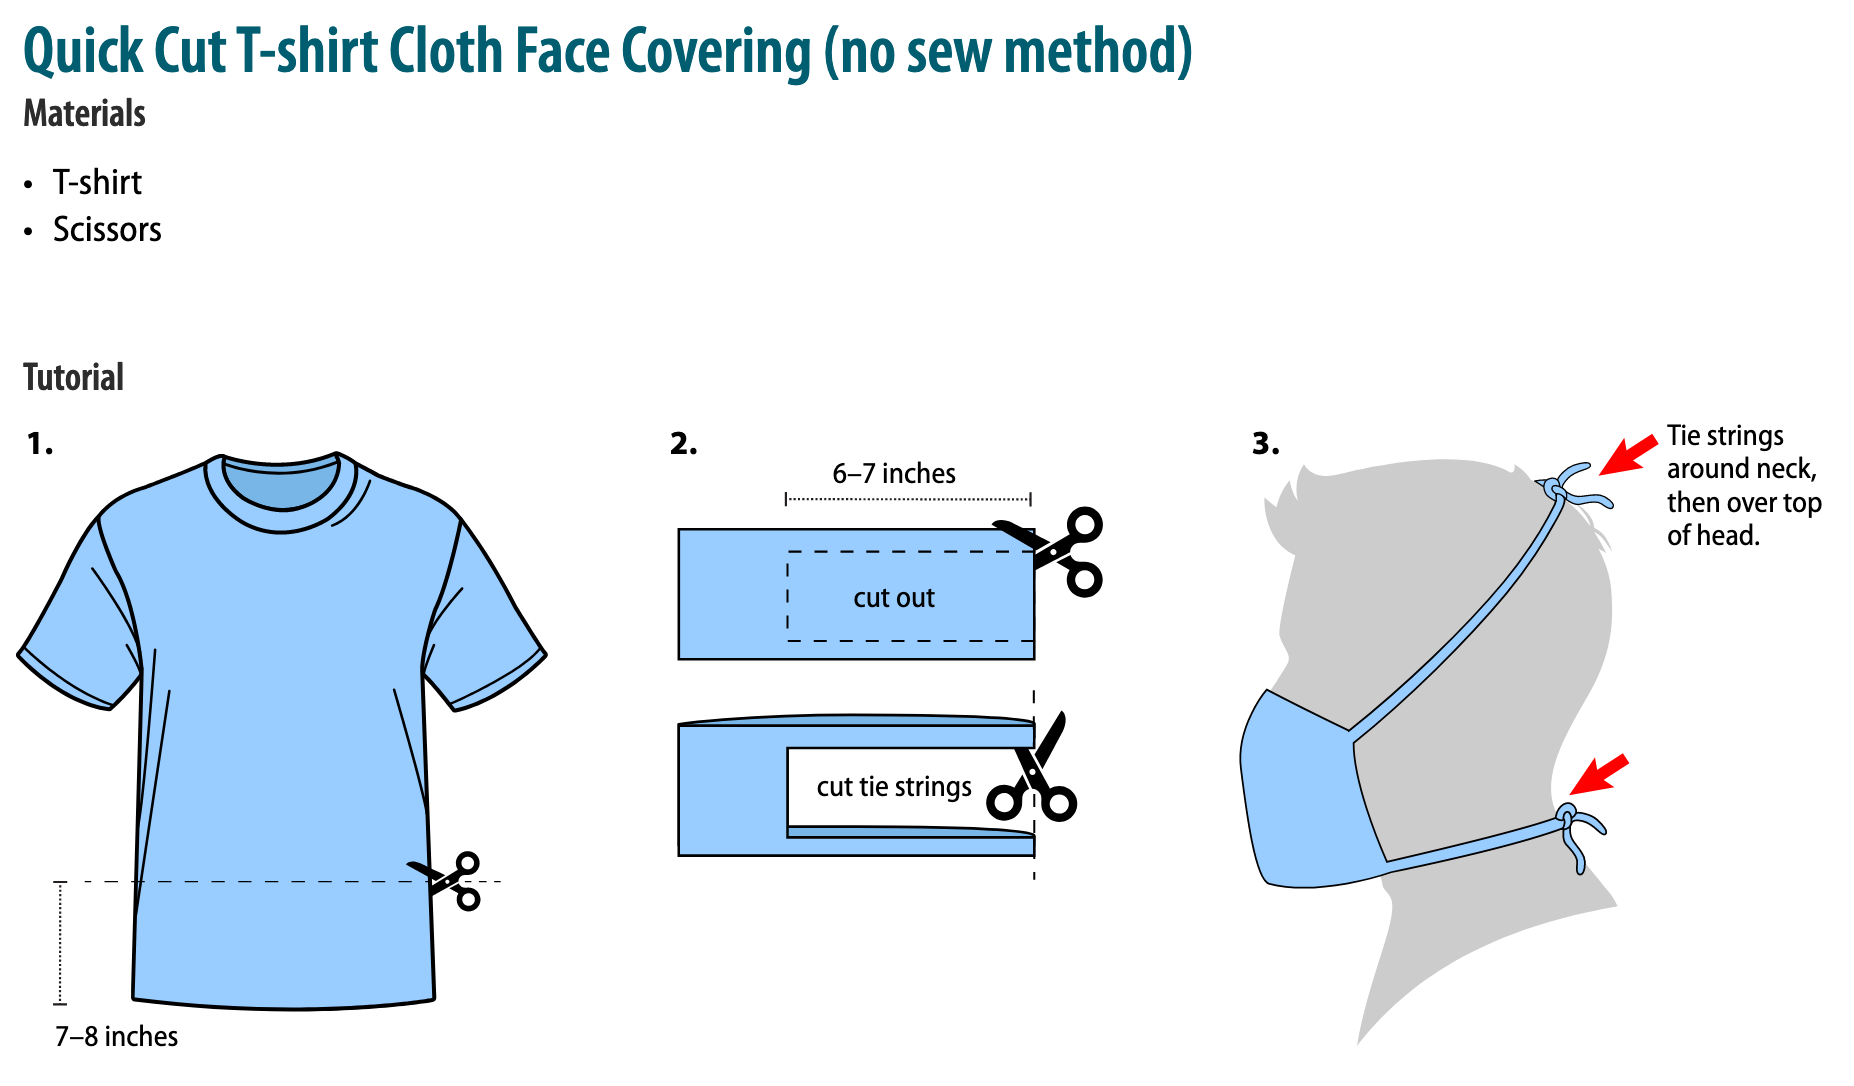 Quick Cut T-shirt Cloth Face Covering (no sew method)